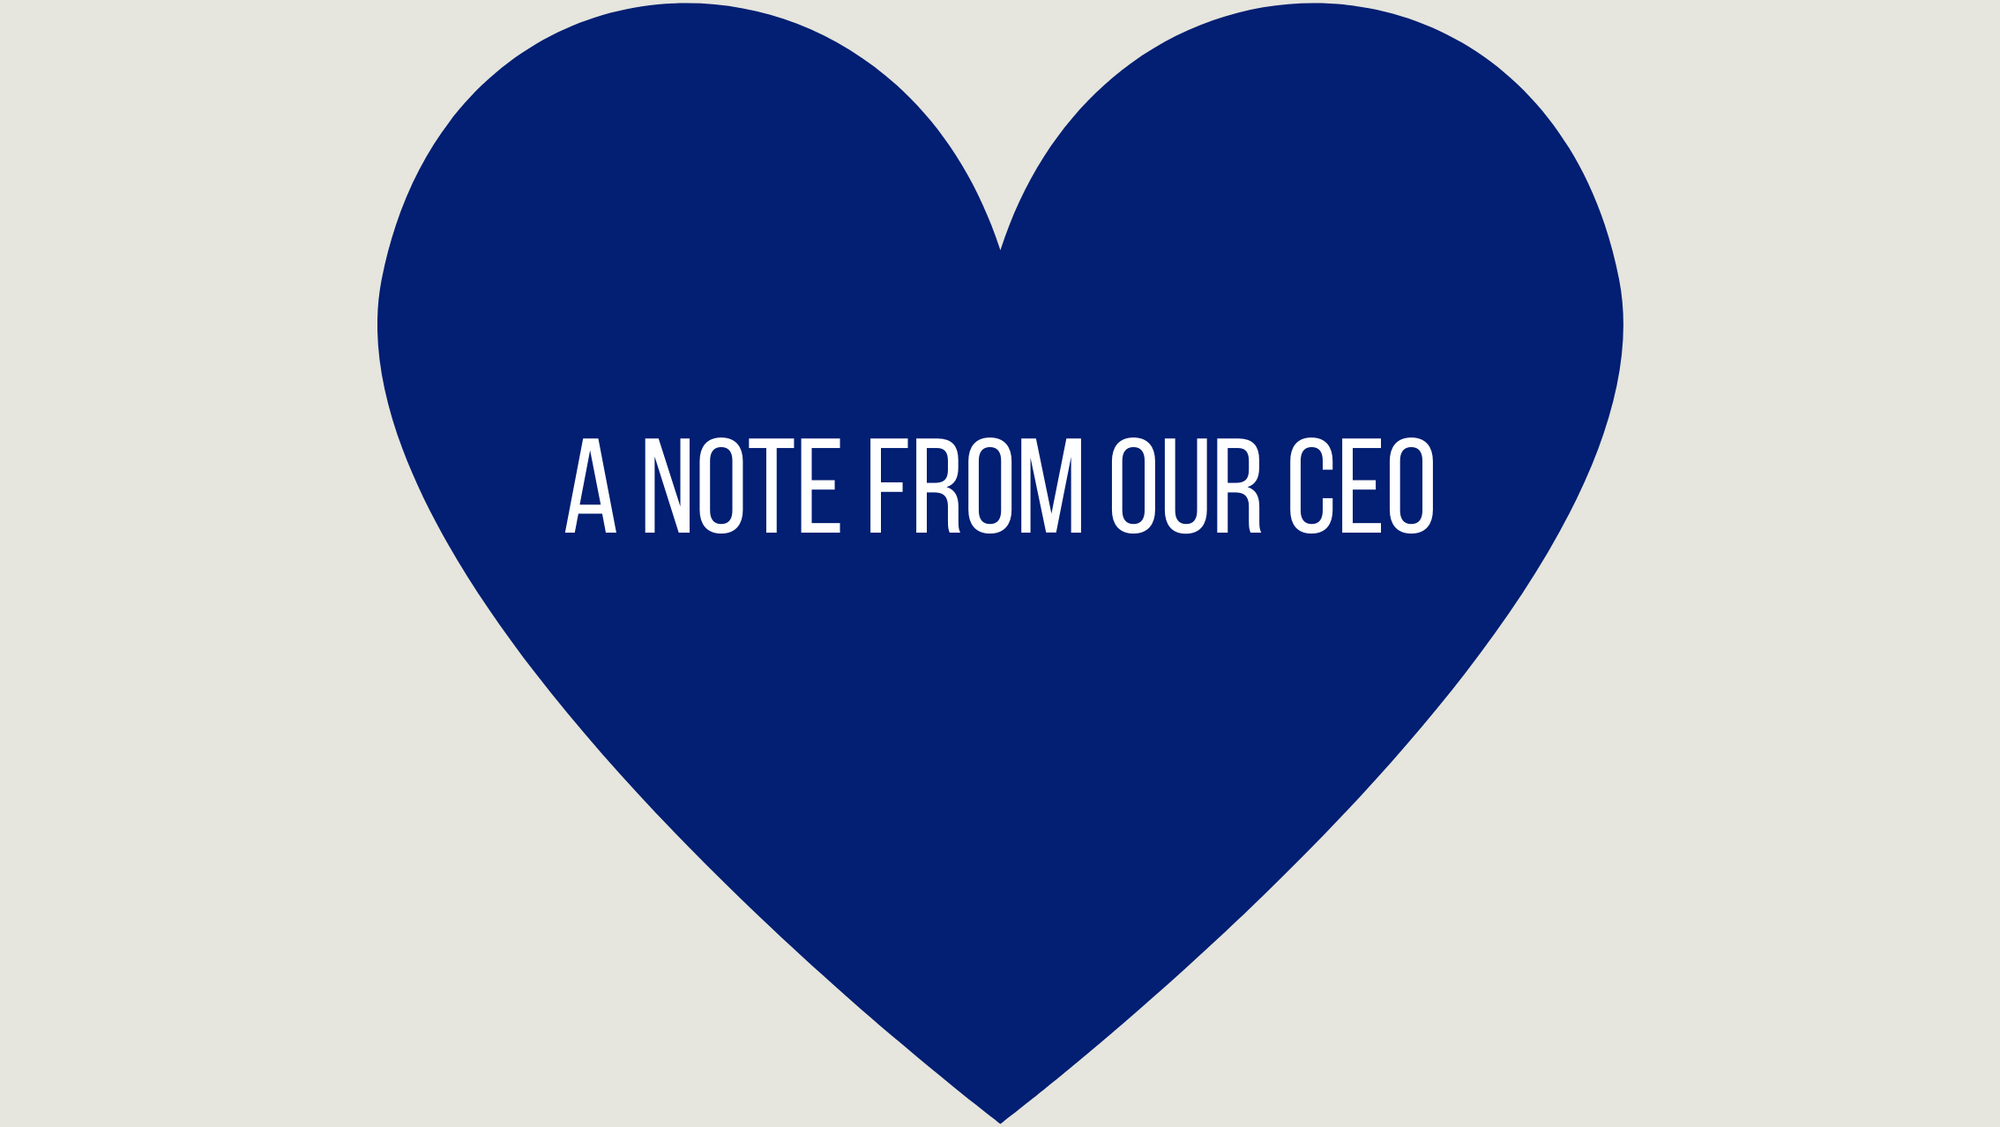 A note from our CEO - END RACISM